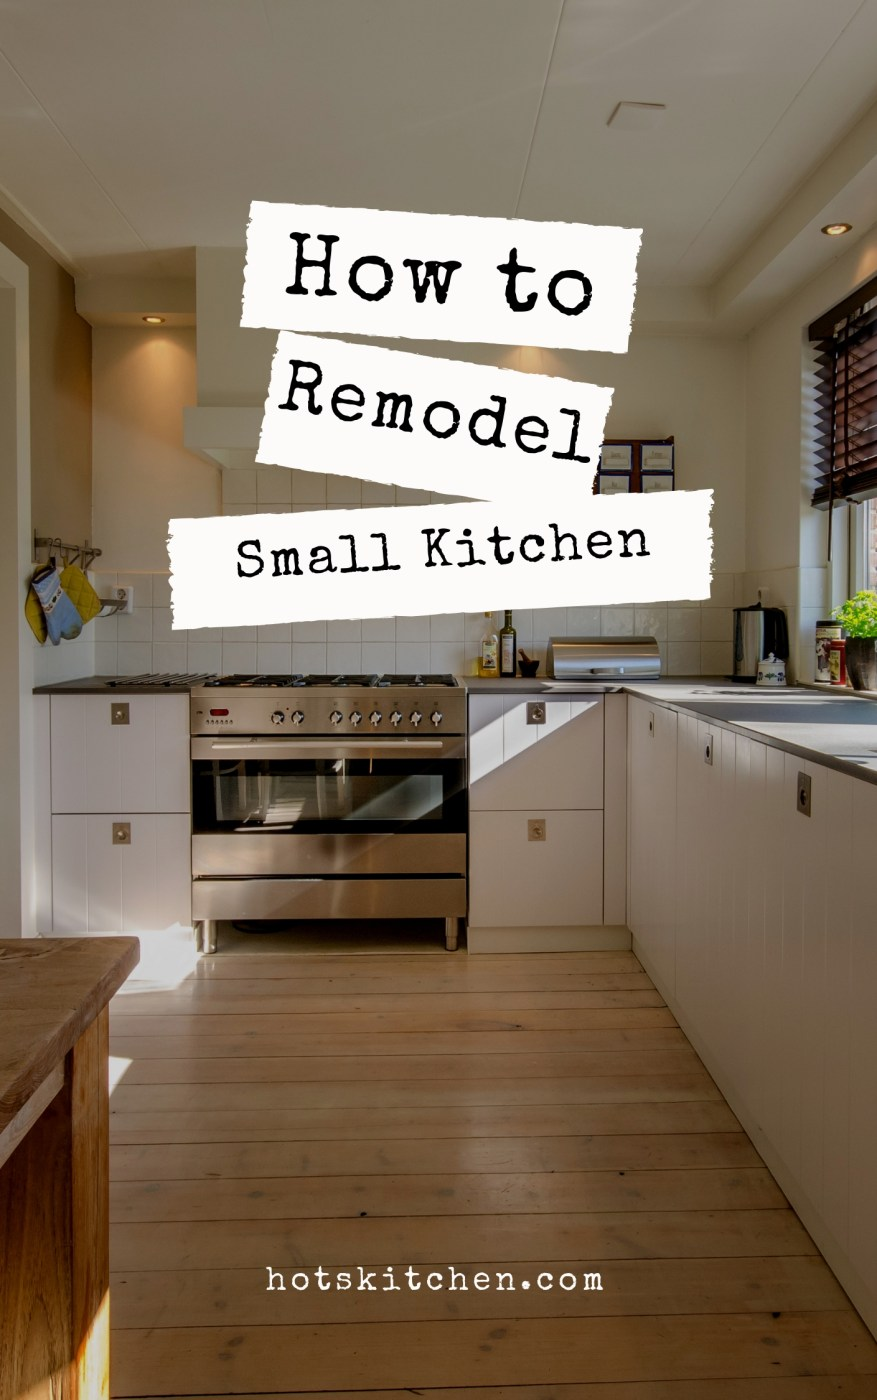 How to Remodel a Small Kitchen?